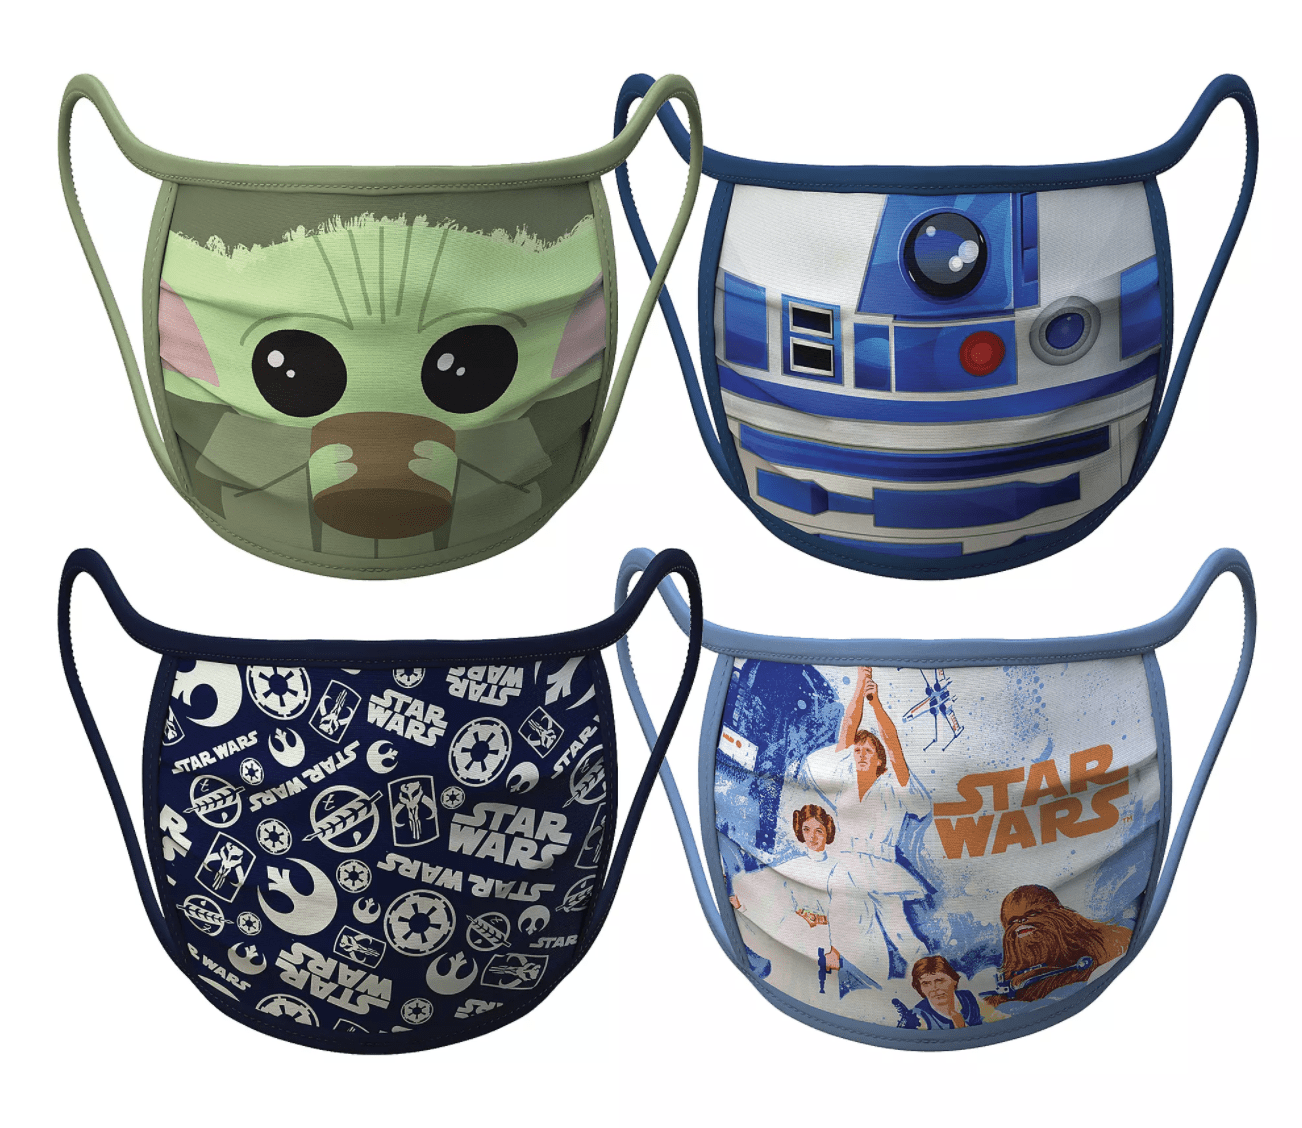 Star Wars Face Masks